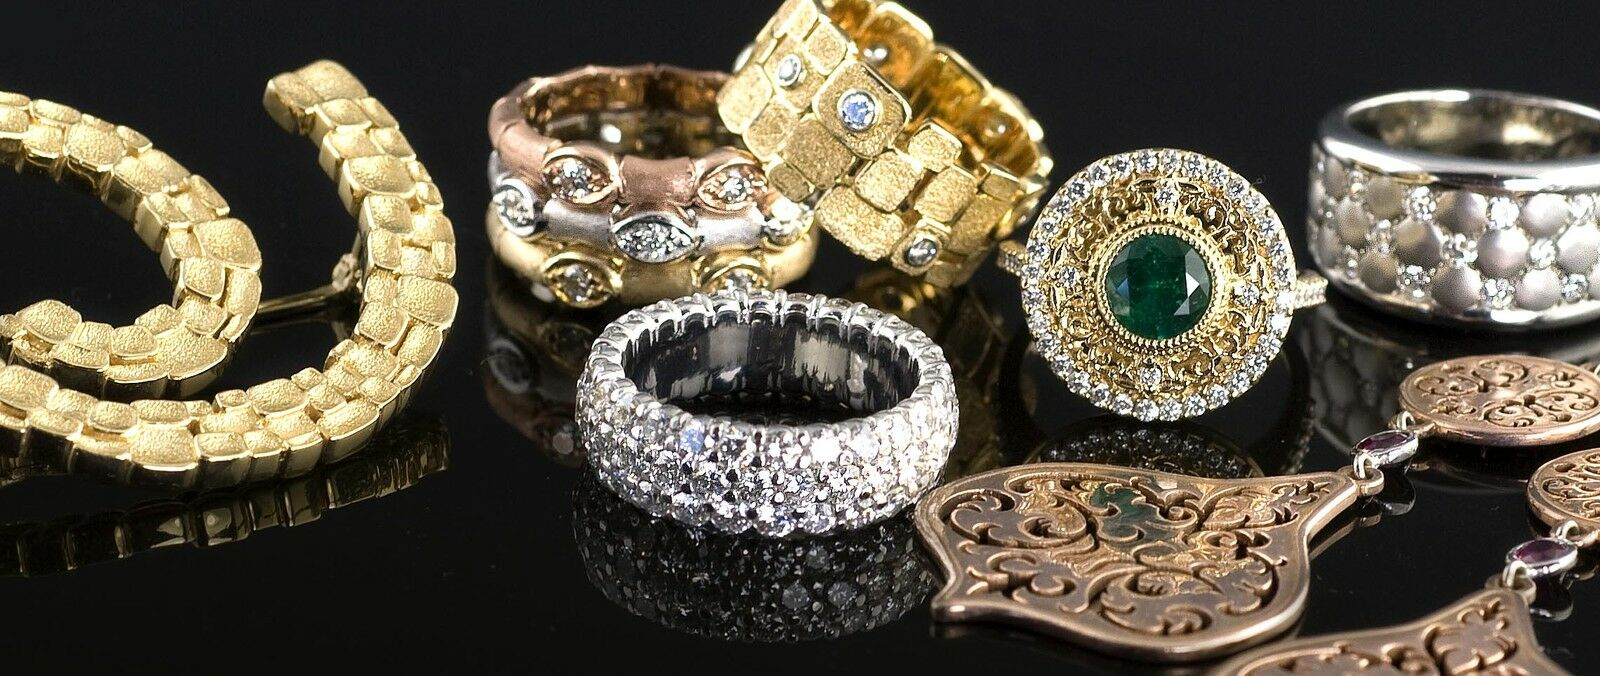 Sabrina's Vintage Jewelry and More